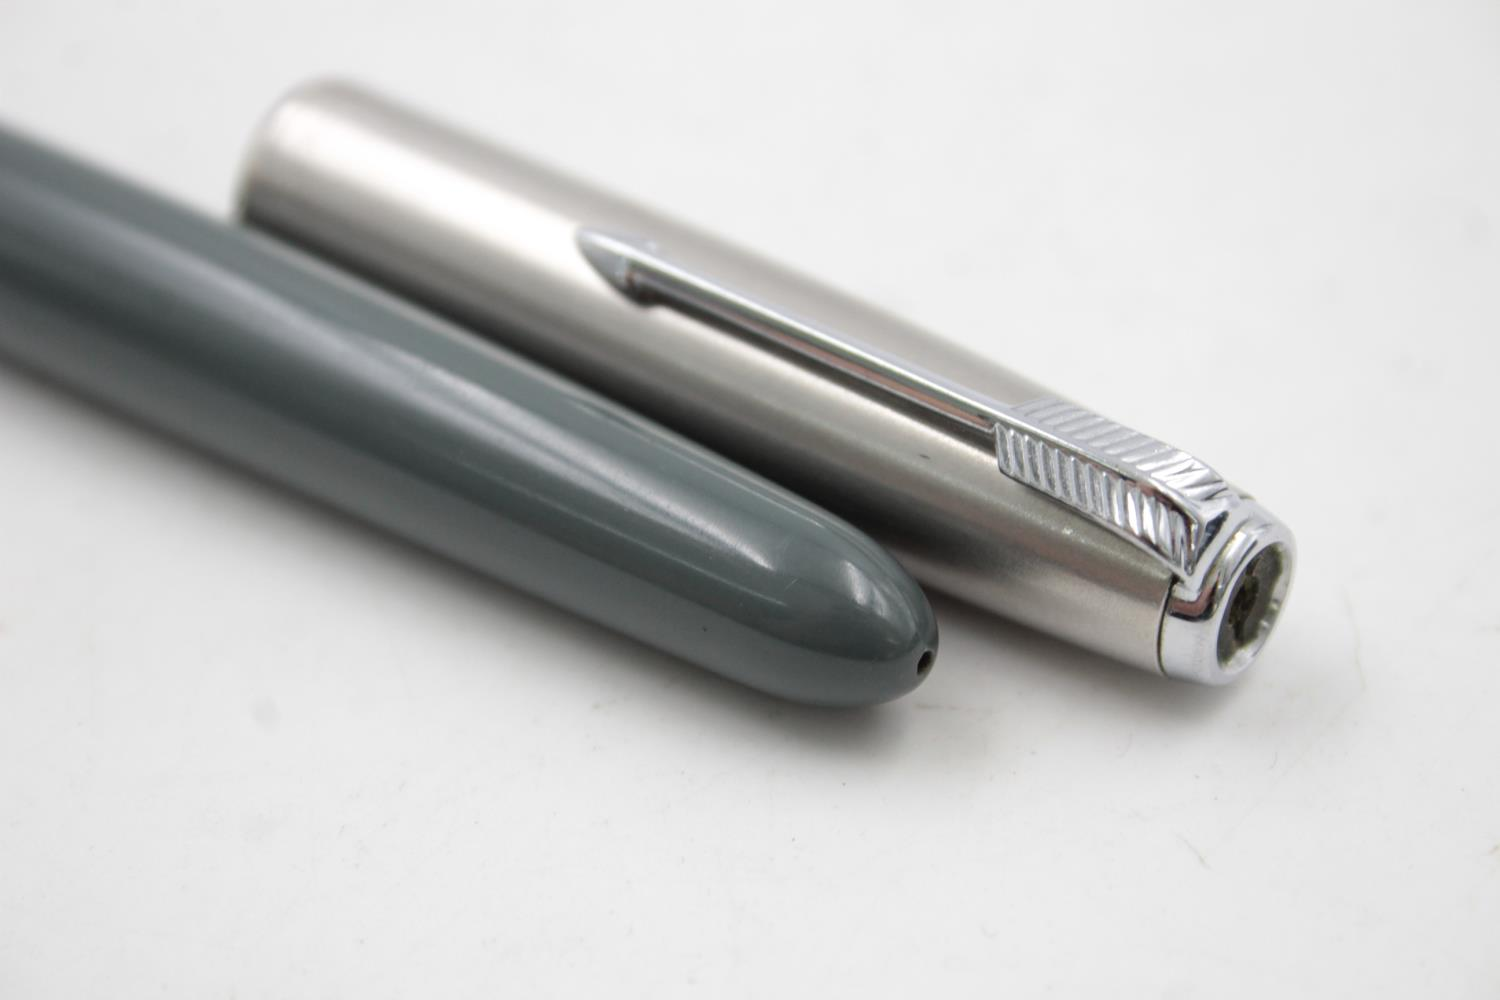 Vintage PARKER 51 Grey FOUNTAIN PEN w/ Brushed Steel Cap WRITING - Image 6 of 7